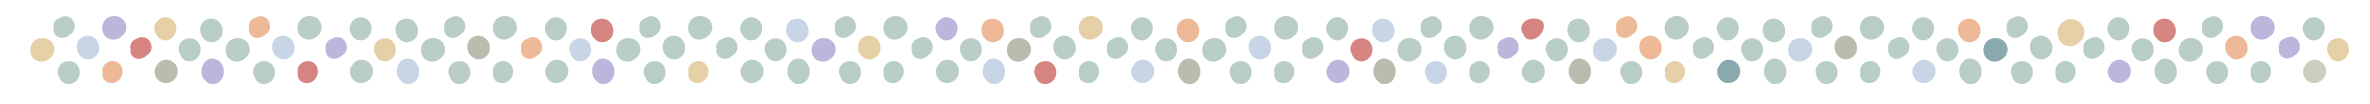 donor-dots-opacity50.jpg